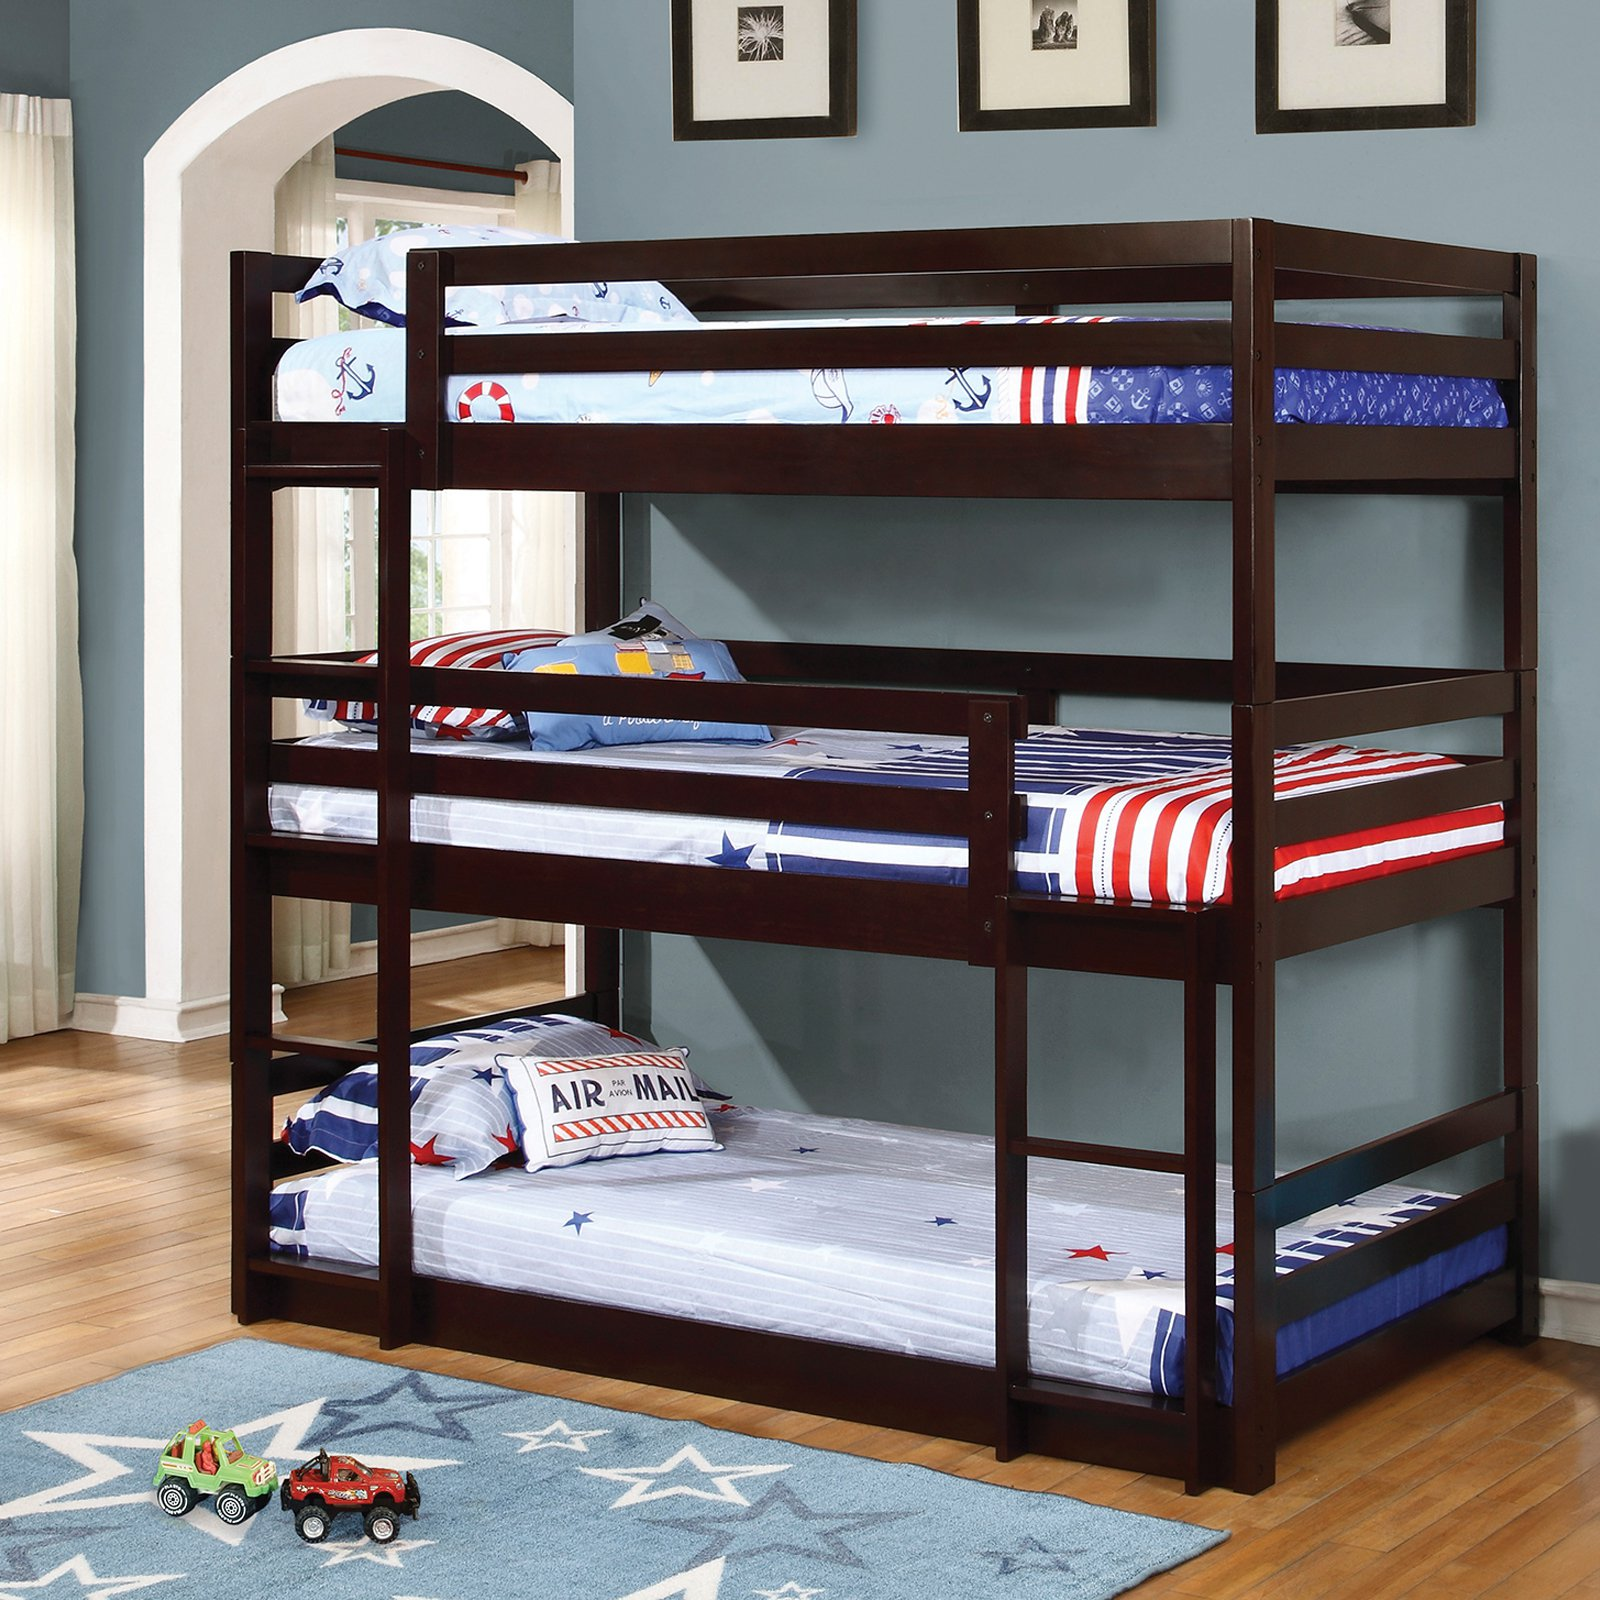 Coaster Furniture Triple Layer Bunk Bed by